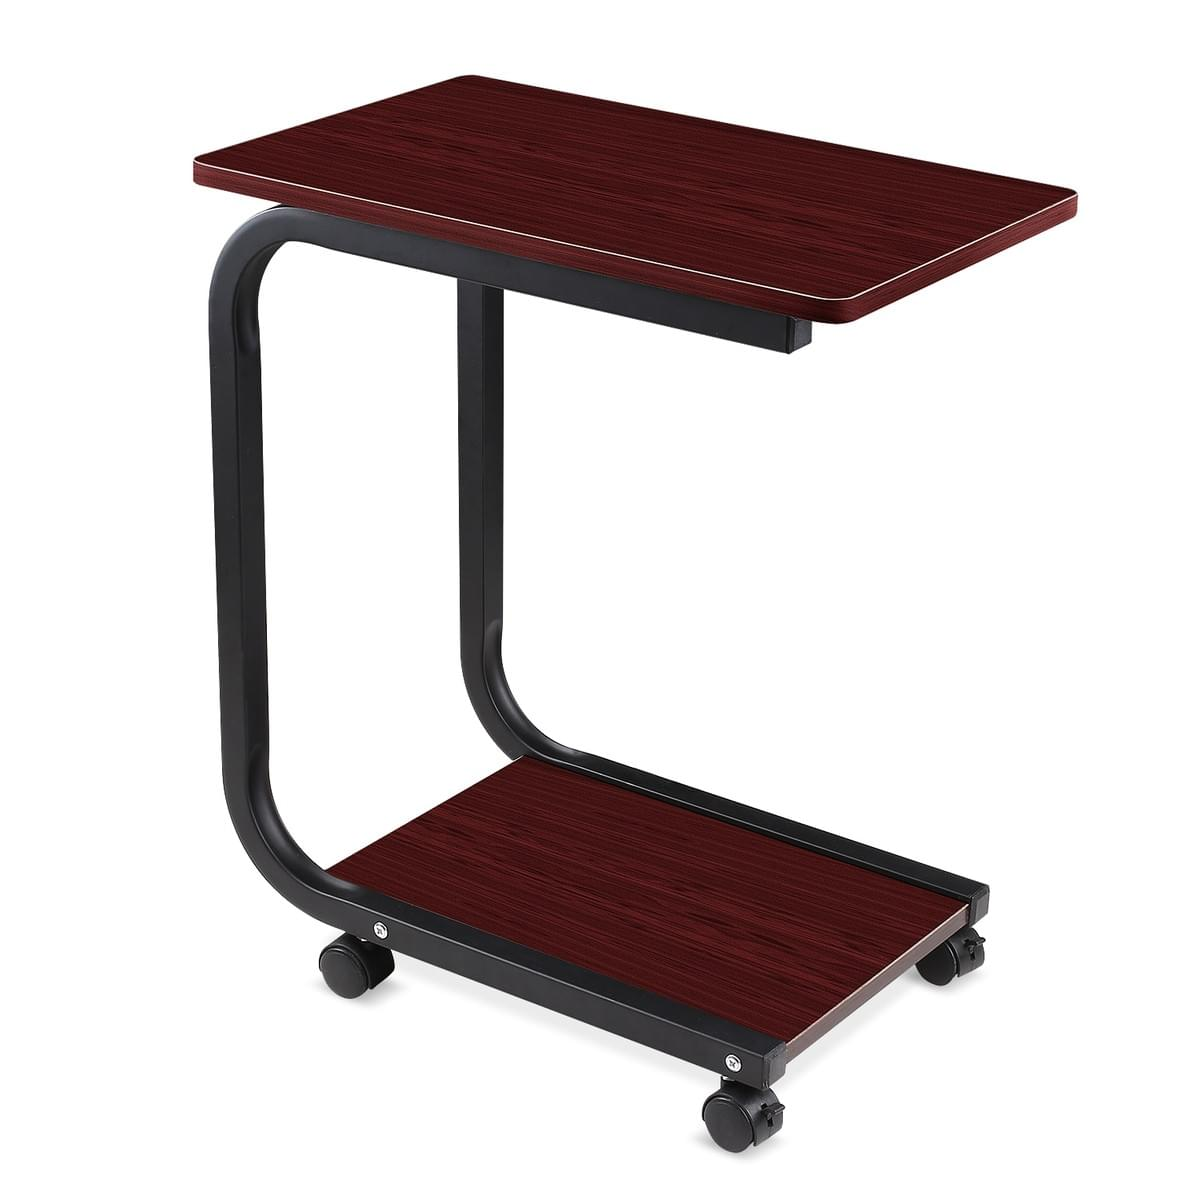 Terrific U Shaped Side Table Computer Tray Sofa Couch End Table Pdpeps Interior Chair Design Pdpepsorg